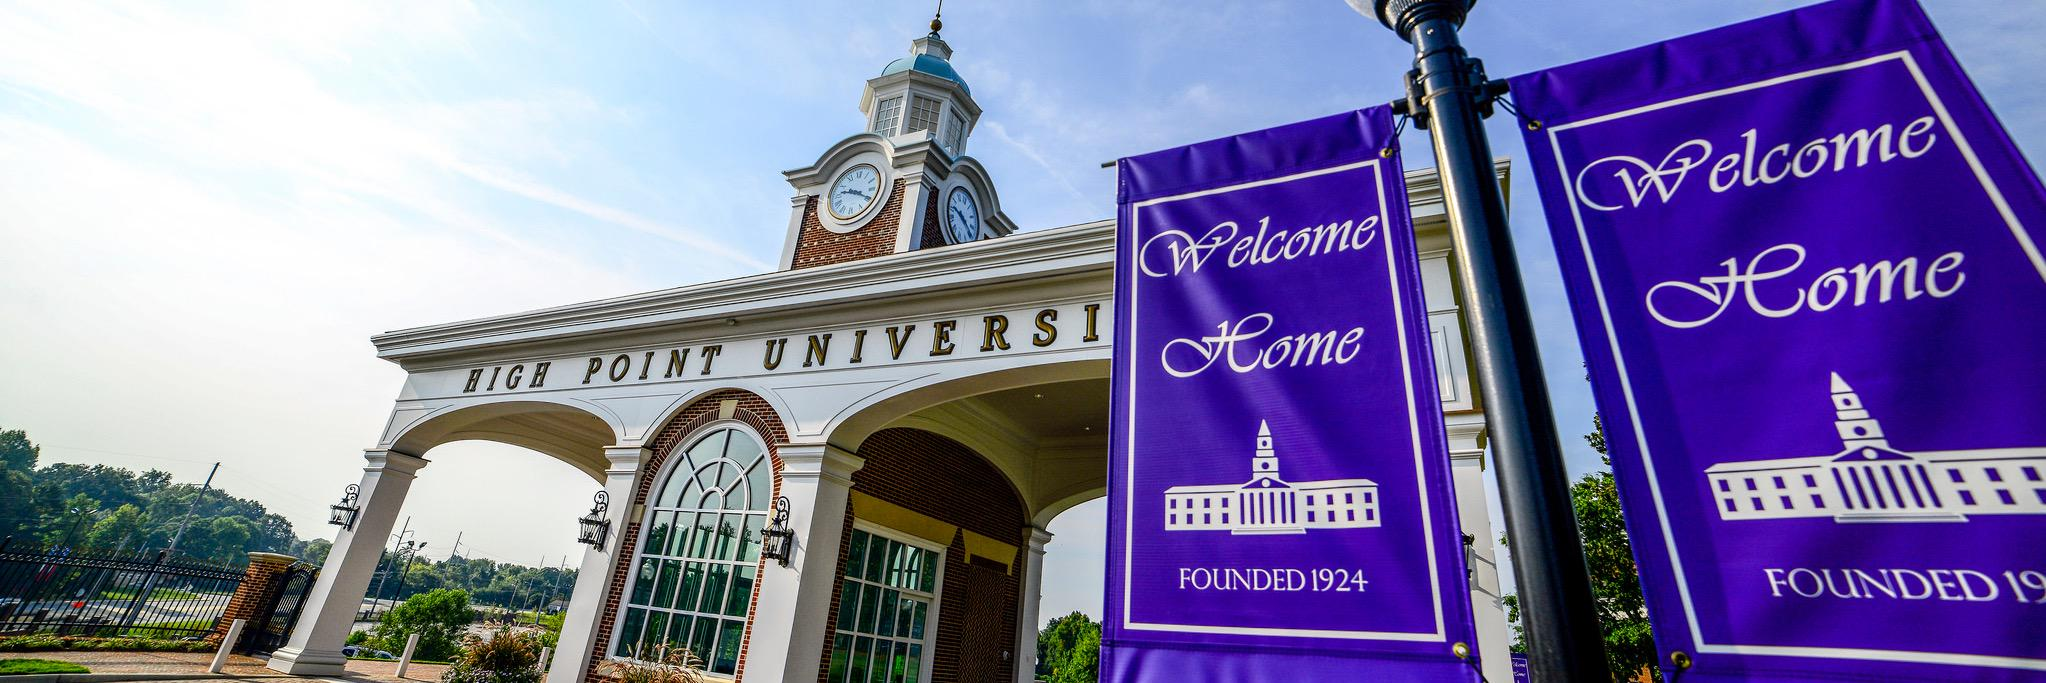 sNOwbody can keep us from welcoming you home, #HPU2024! A snow flurry in the NC forecast won't keep… https://t.co/CqfY4DC4yv